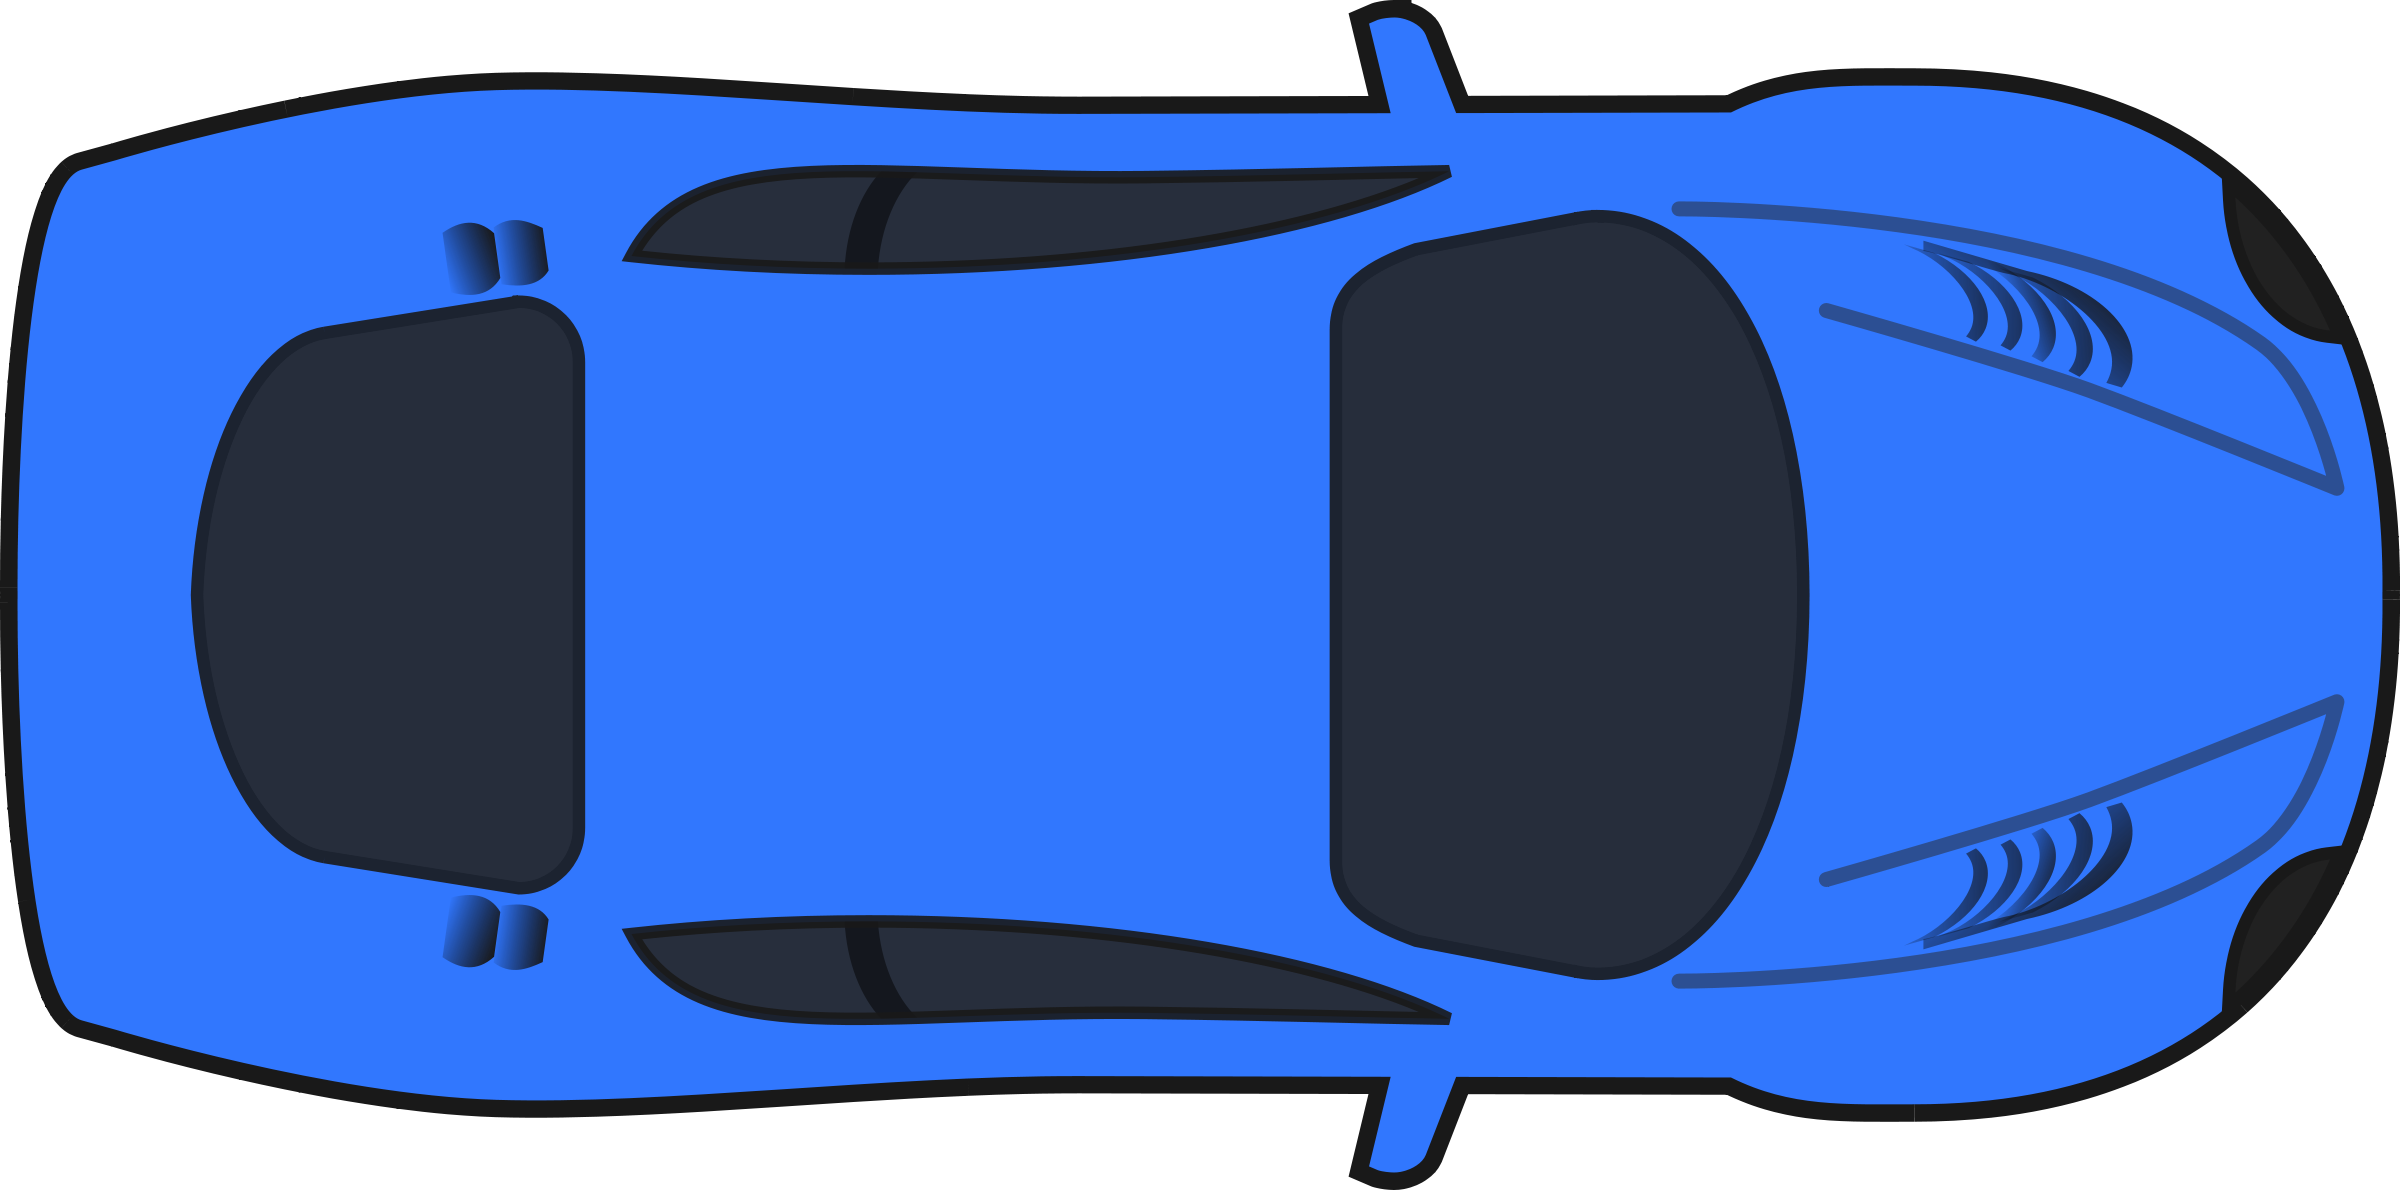 Blue Car clipart transparent car  on Free clipart view